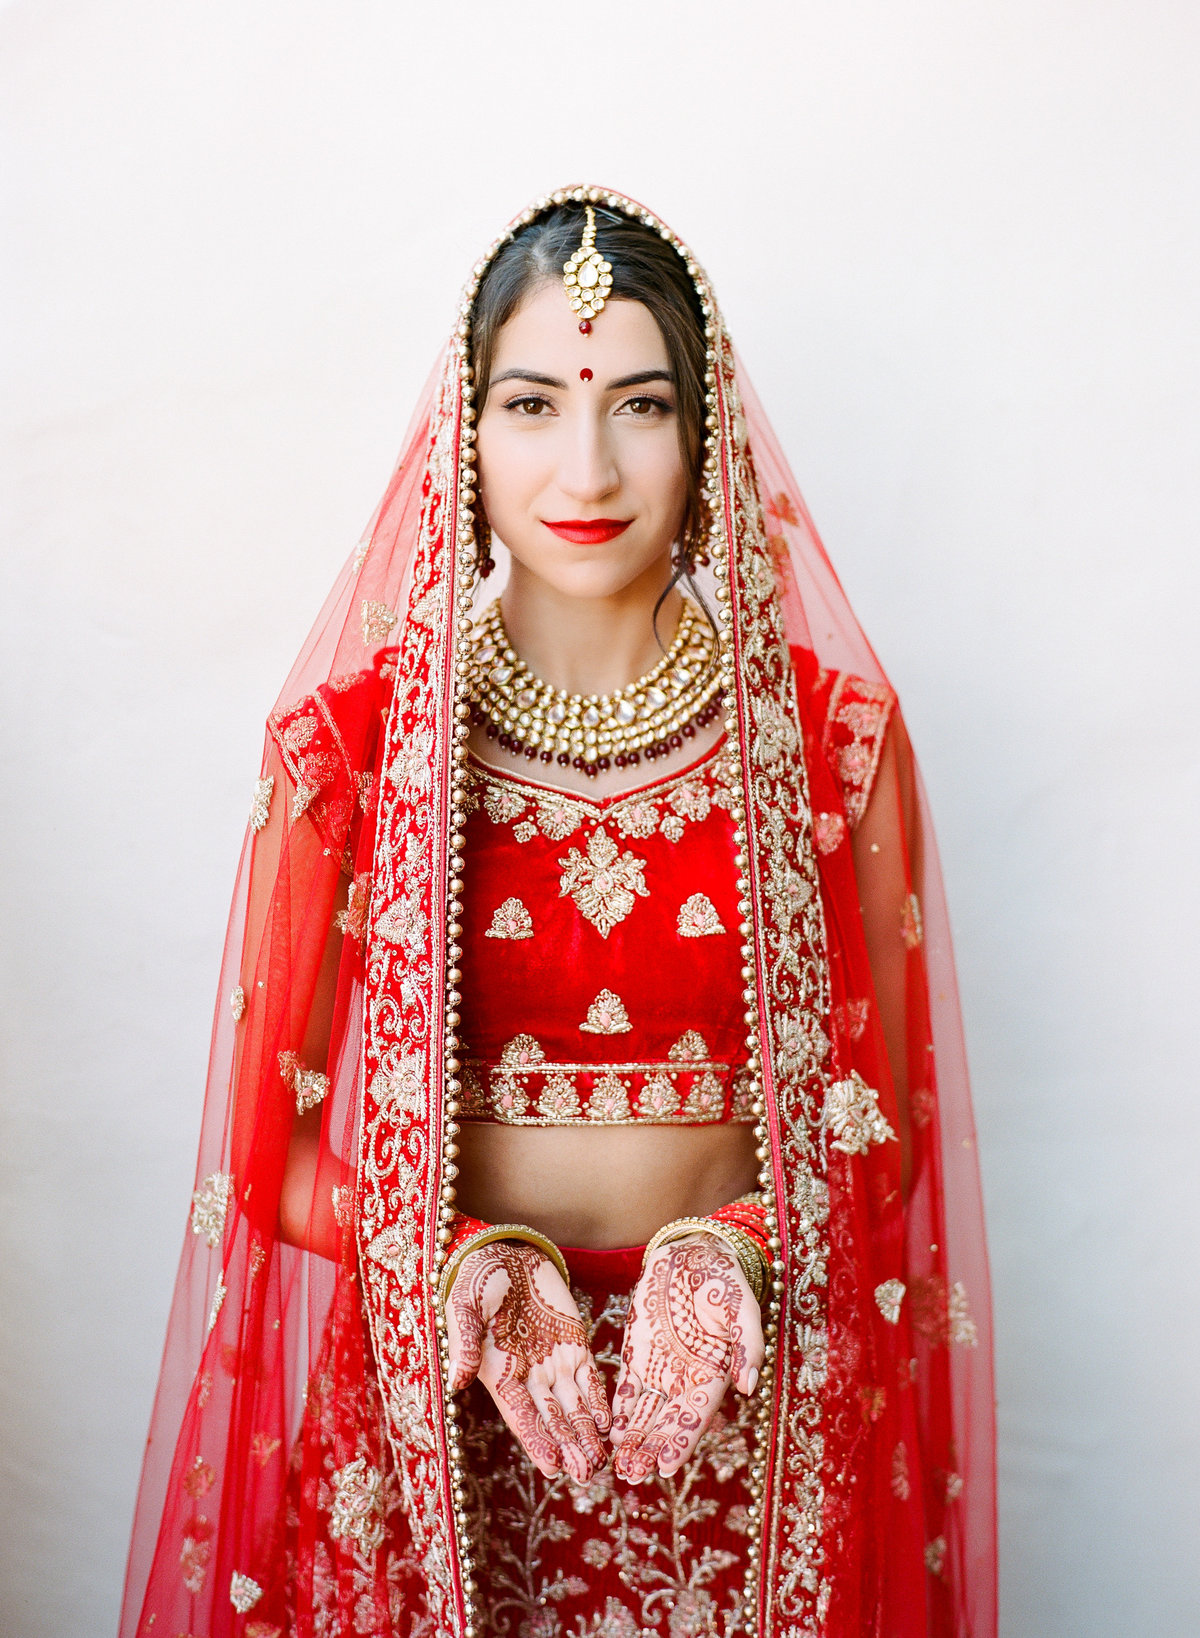 sasha-aneesh-wedding-bride-groom-indian-39